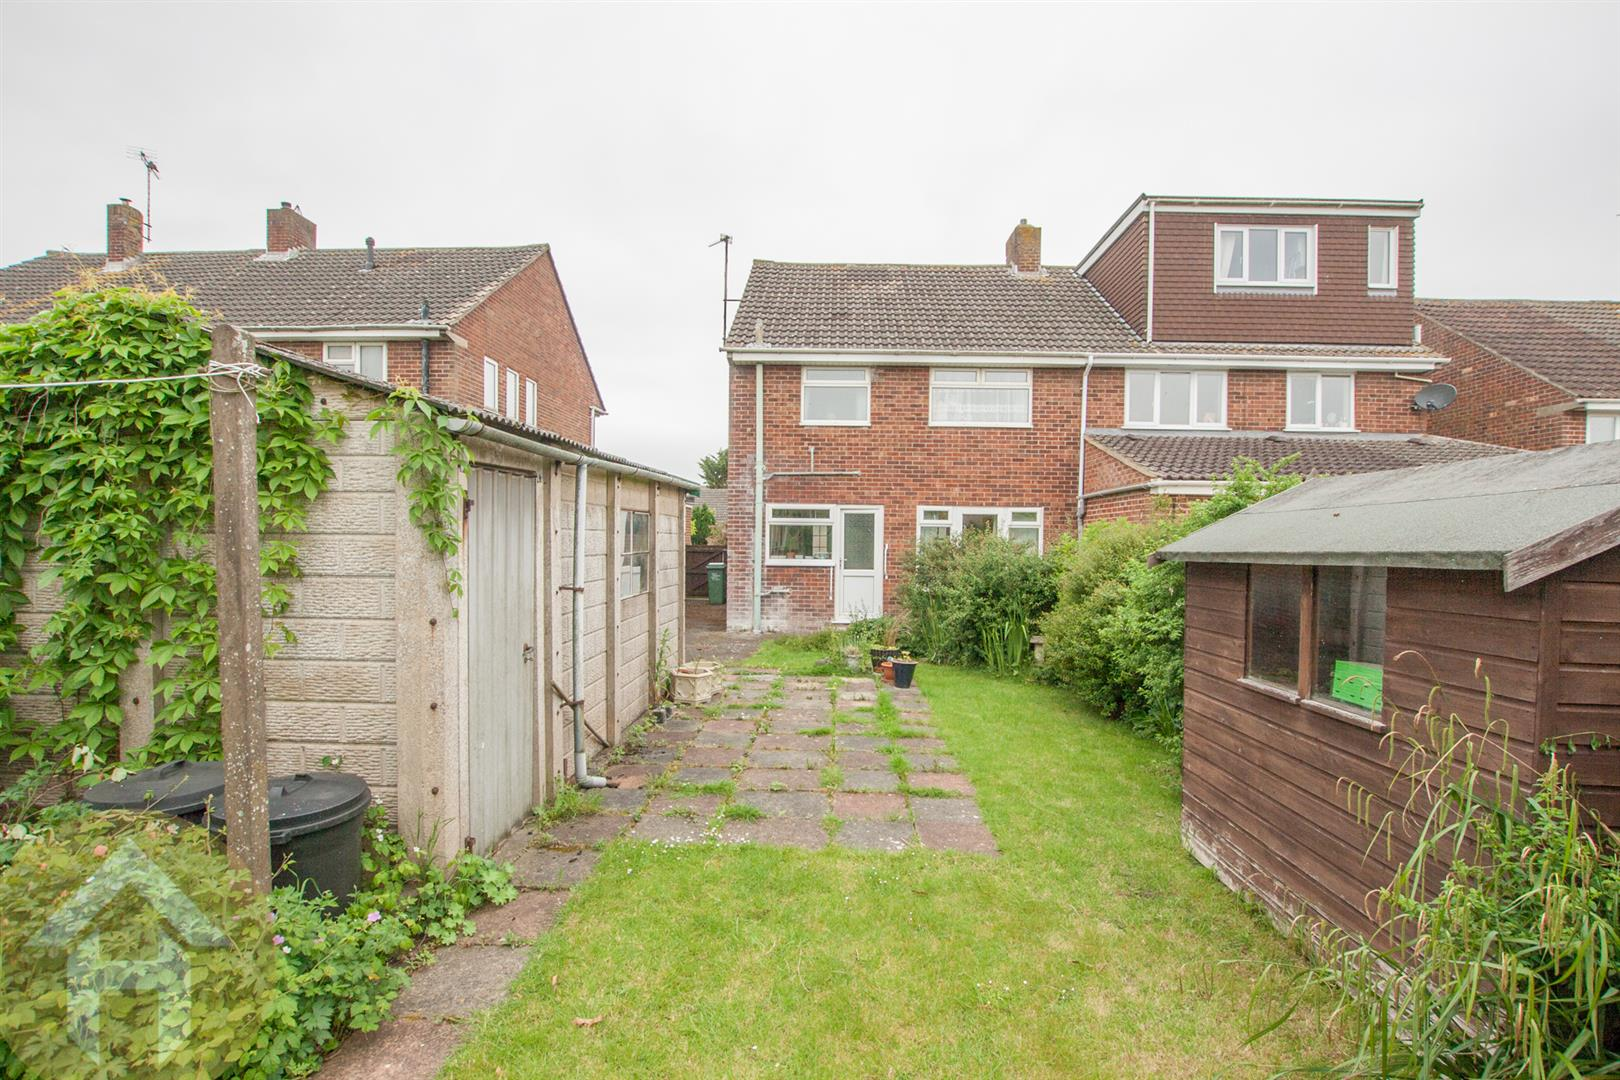 3 Bedrooms Property for sale in Noredown Way, Royal Wootton Bassett